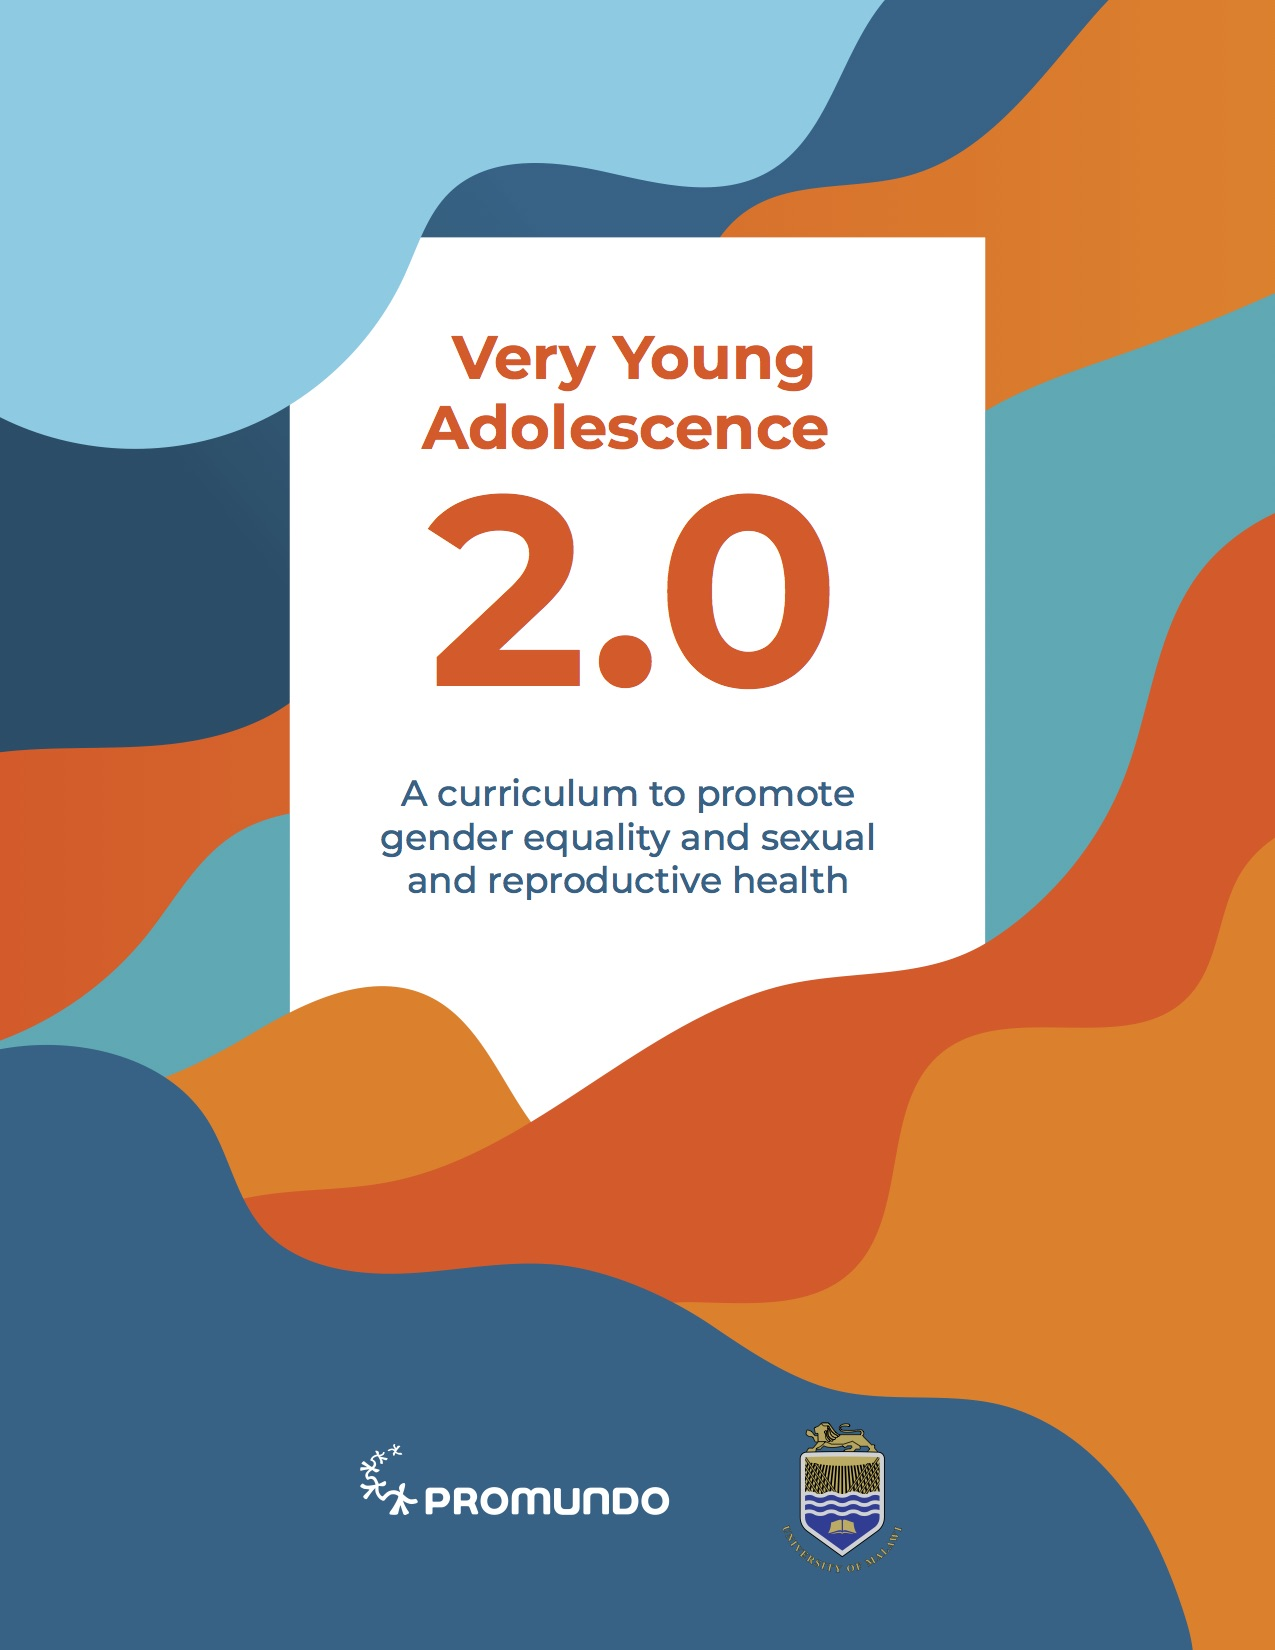 Sexual health promotion and the adolescence